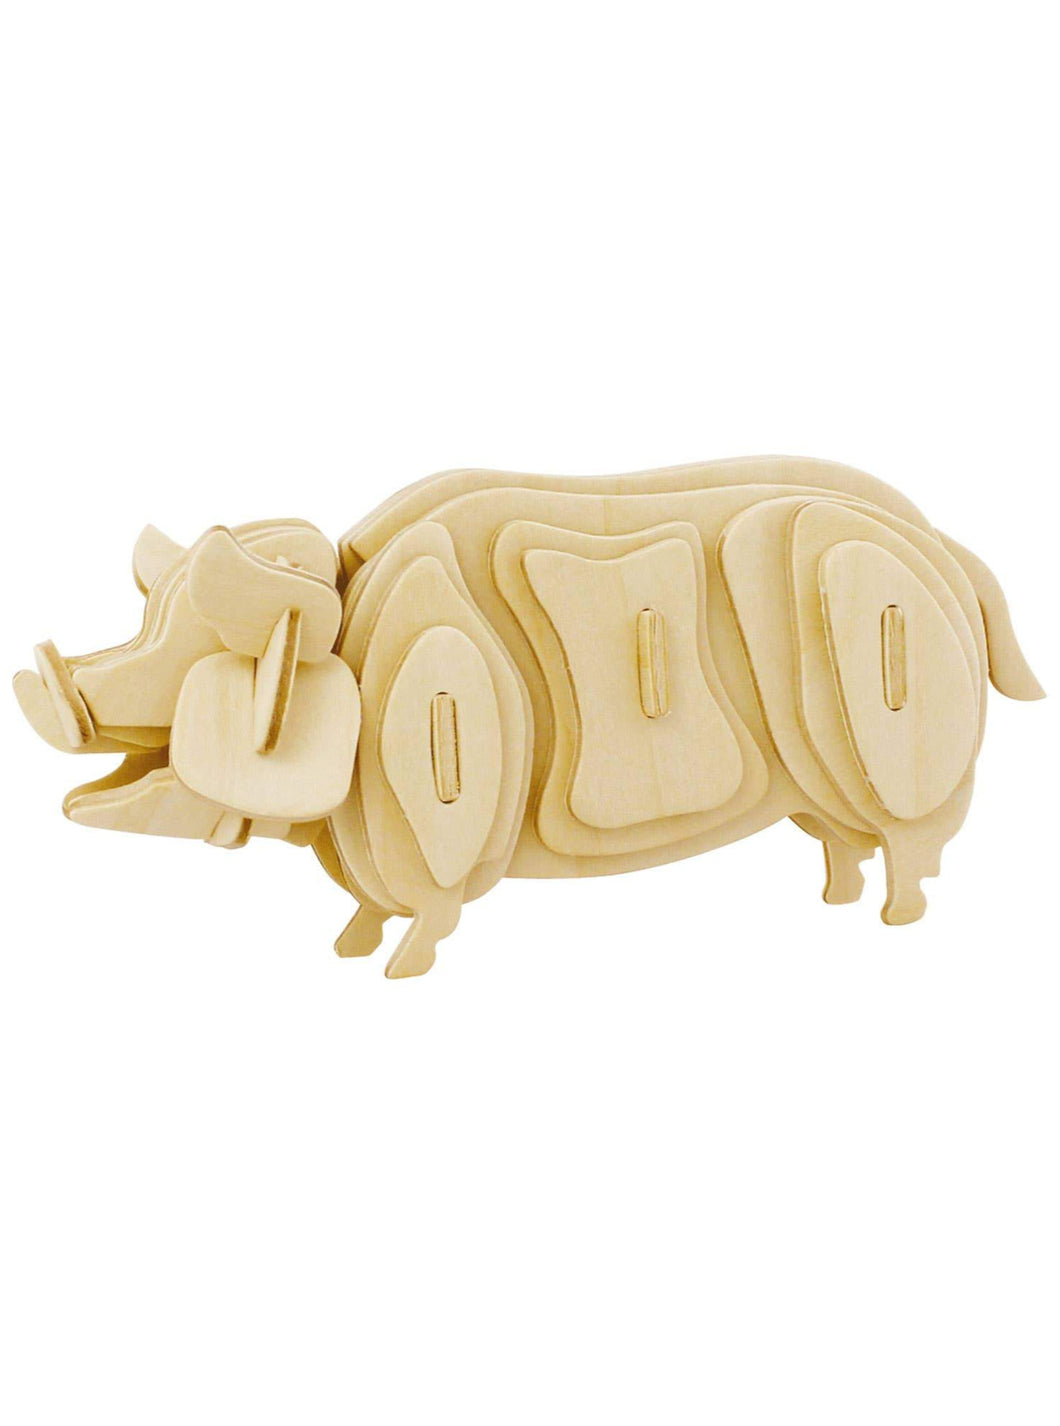 3D Wooden Puzzle: Pig - Tigertree